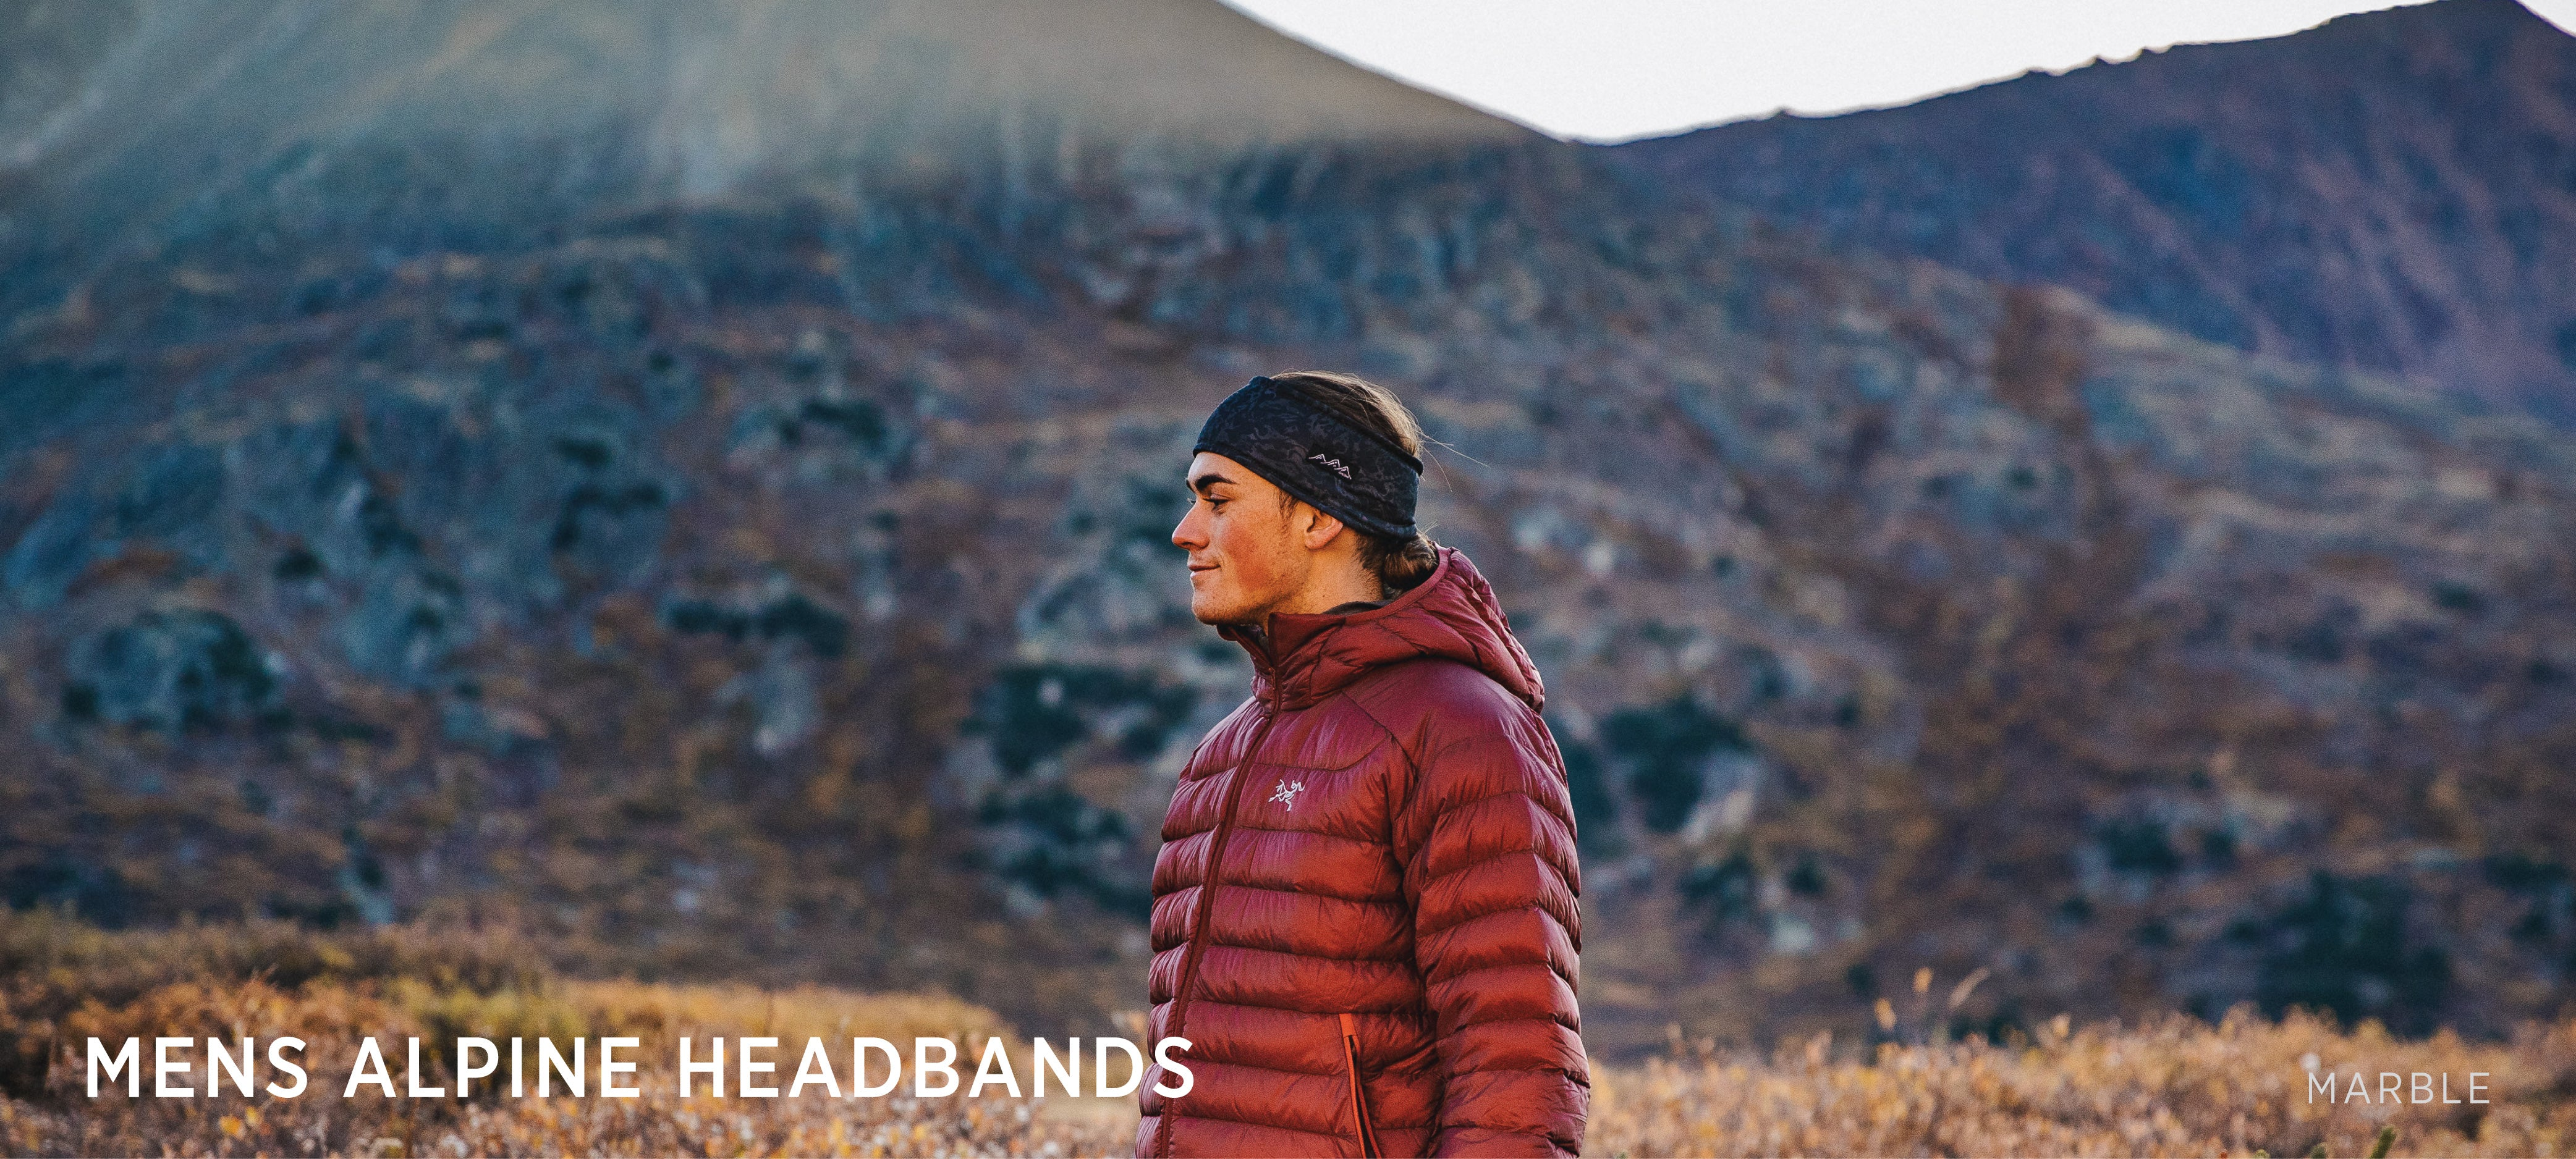 Shop Mens Alpine Headbands!